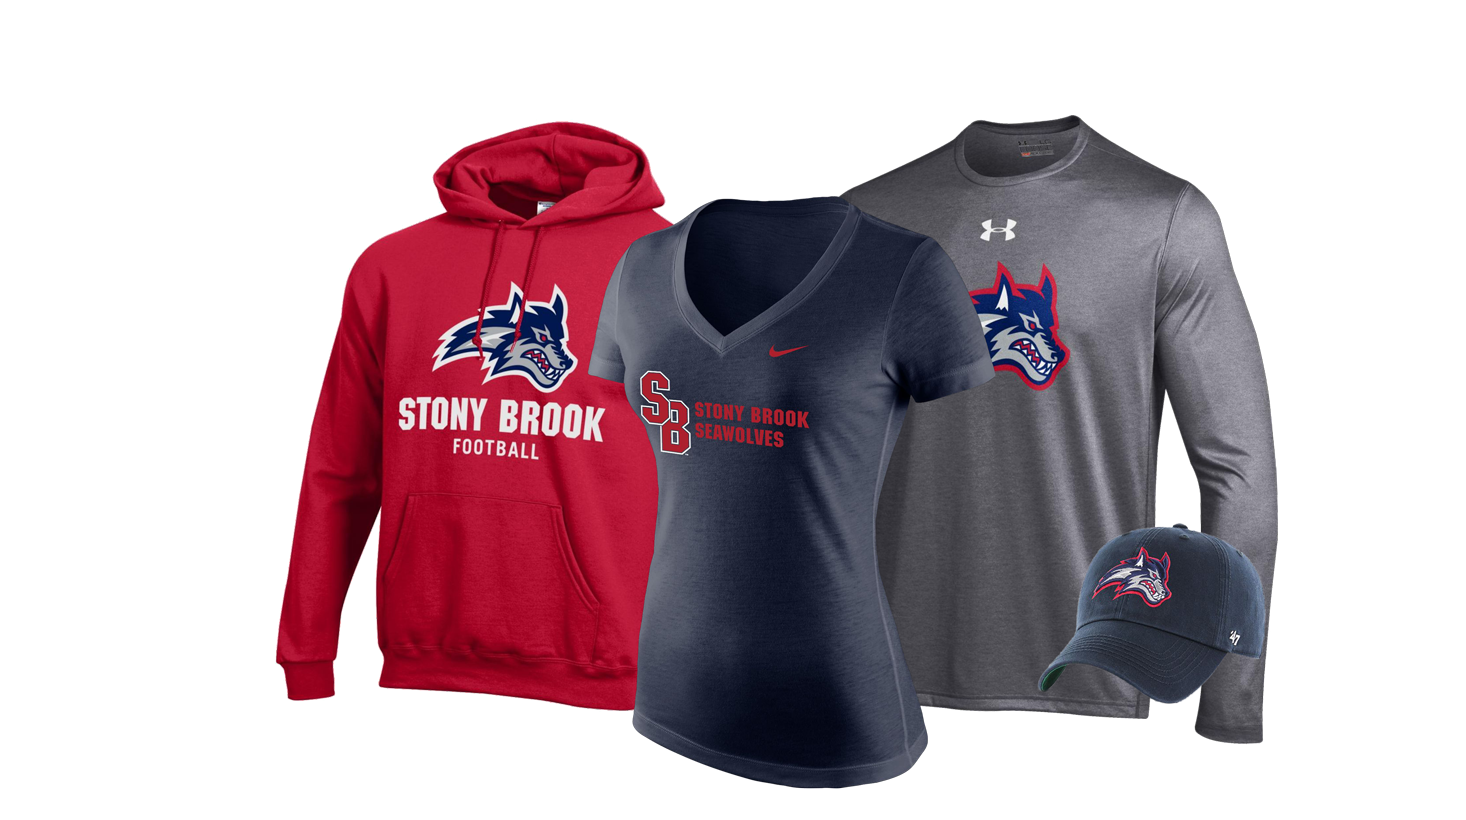 new style ce8cb cbb5e Stony Brook University Shop Red West Apparel, Merchandise ...